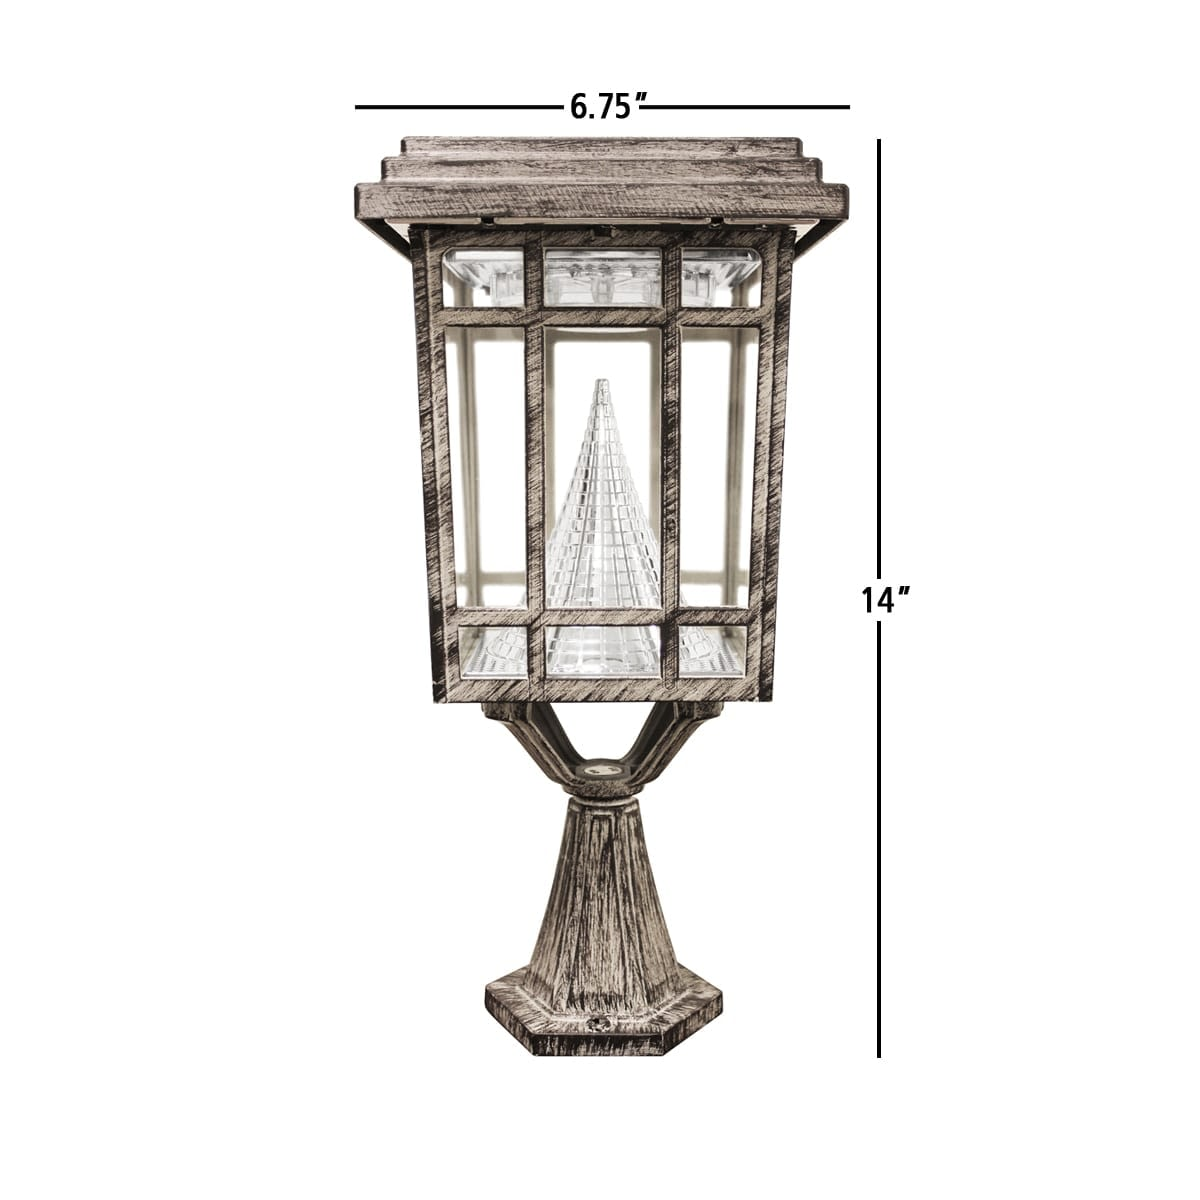 Prairie Solar Lamp by Gama Sonic GS-114P Measurements